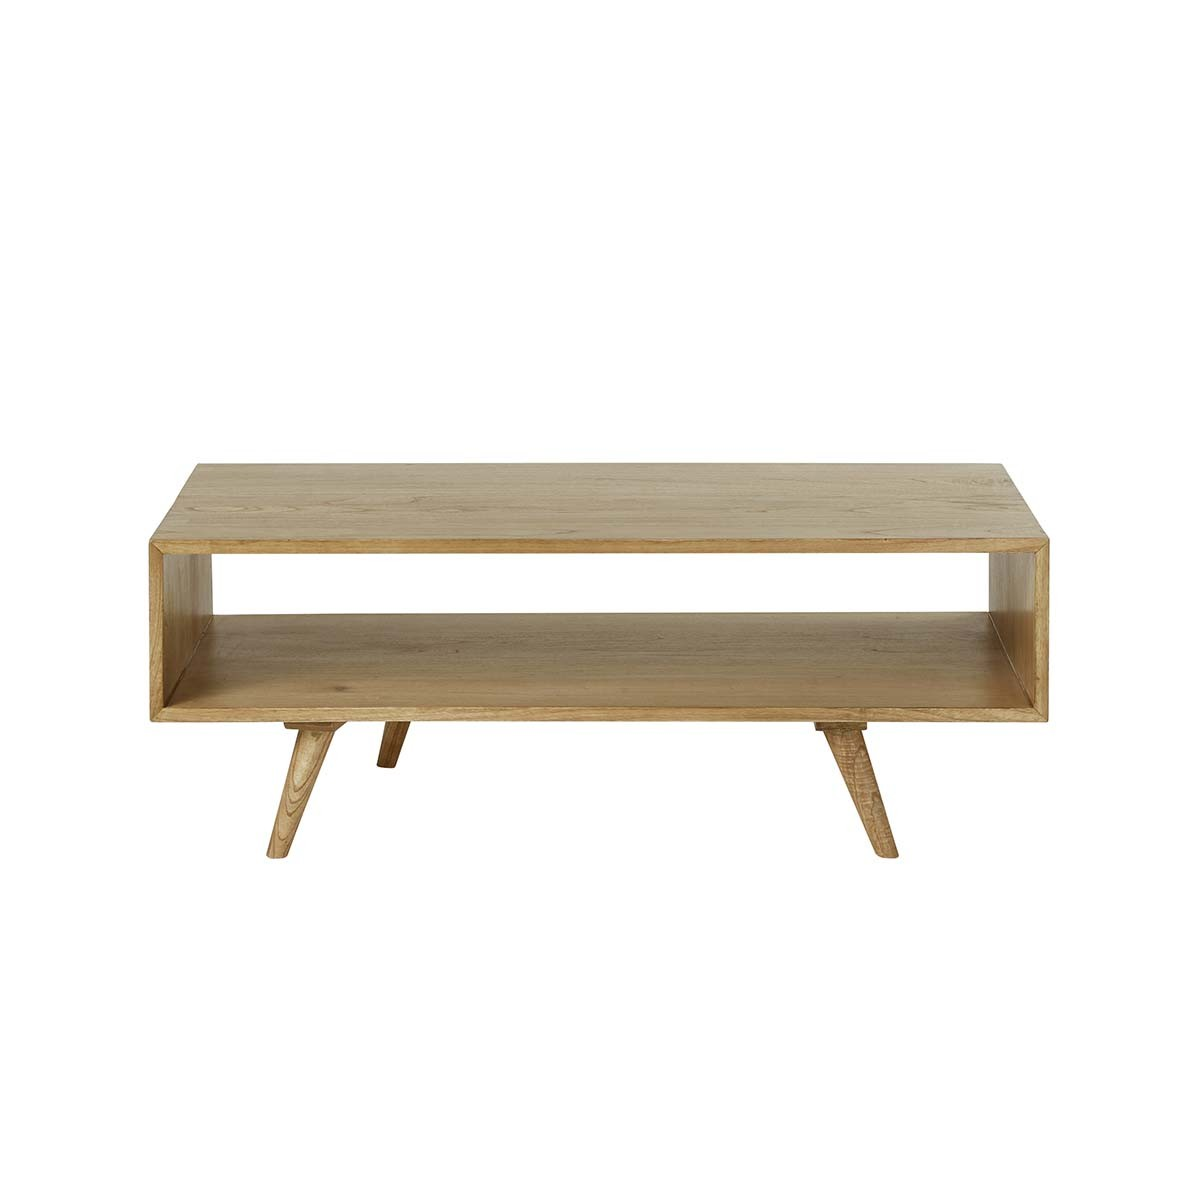 maison du monde Table basse scandinave en mindy